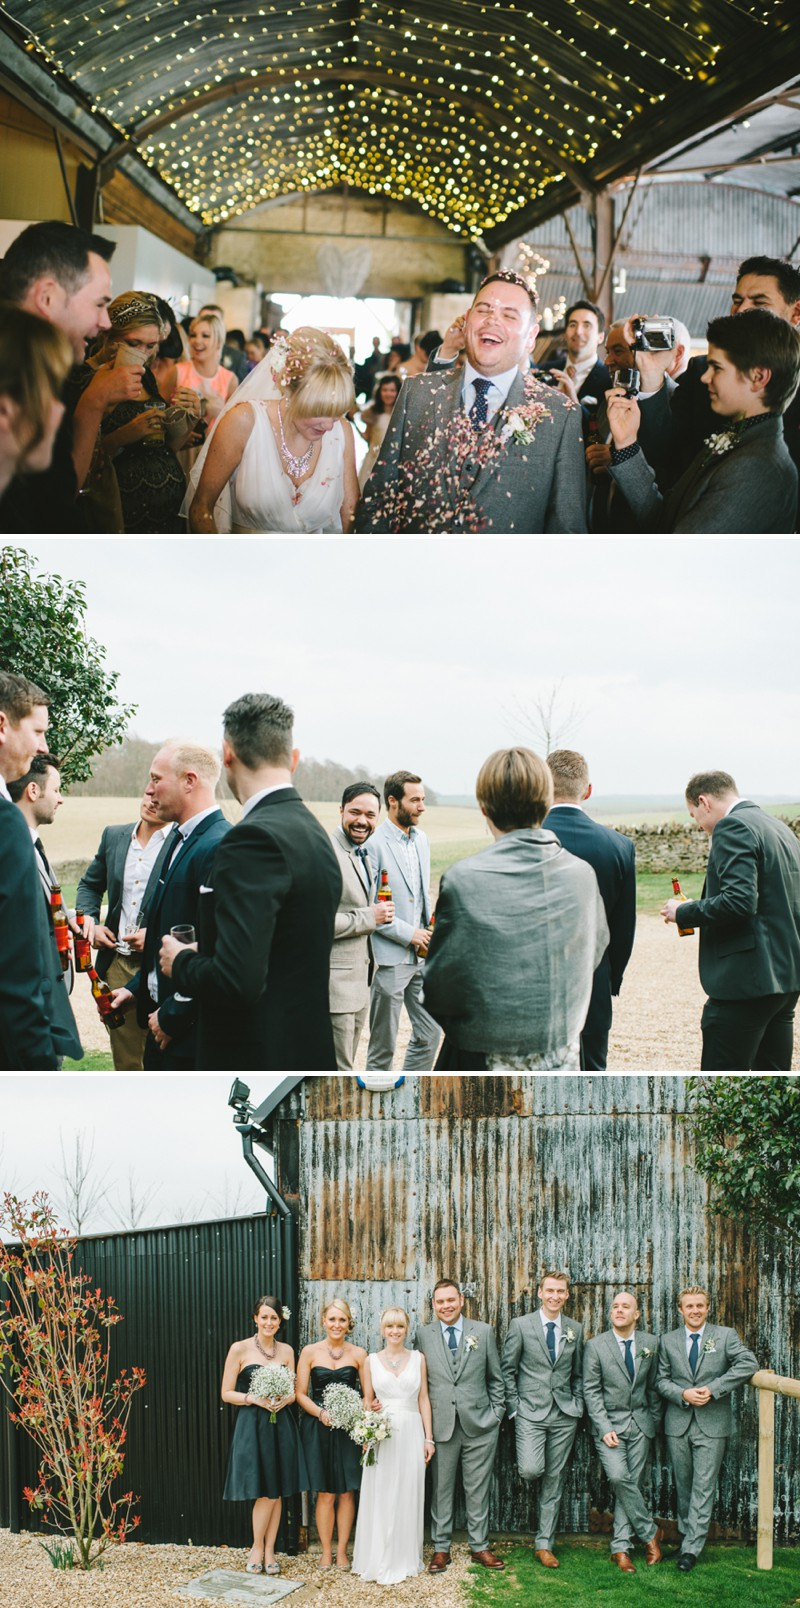 Nicola & Ross wedding